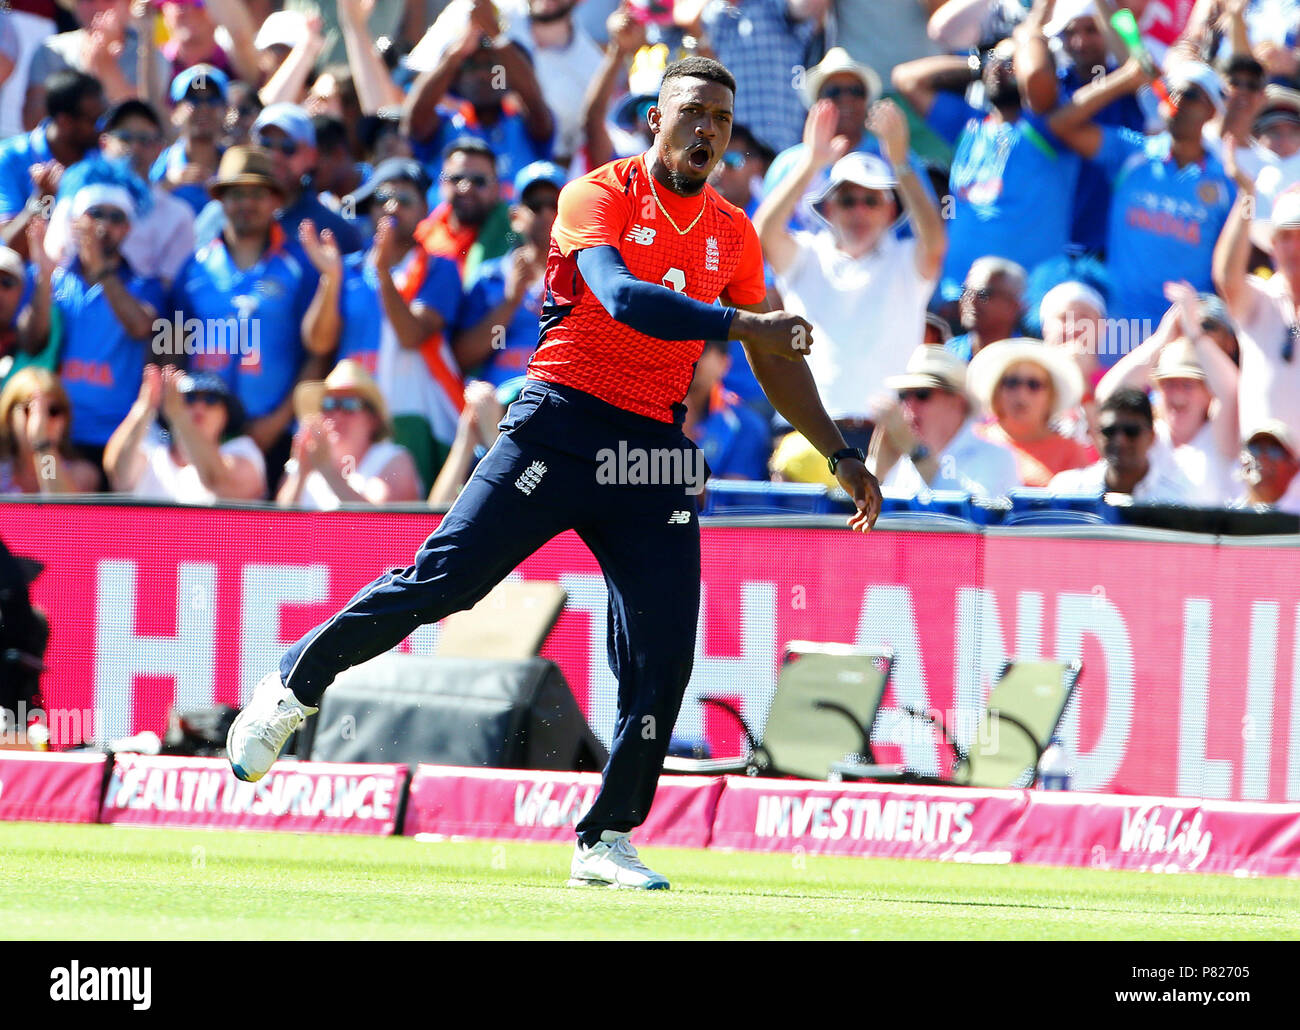 England's Chris Jordan celebrates after catching India's KL Rahul during the Second Vitality IT20 Series Match at the Brightside Ground, Bristol. Stock Photo